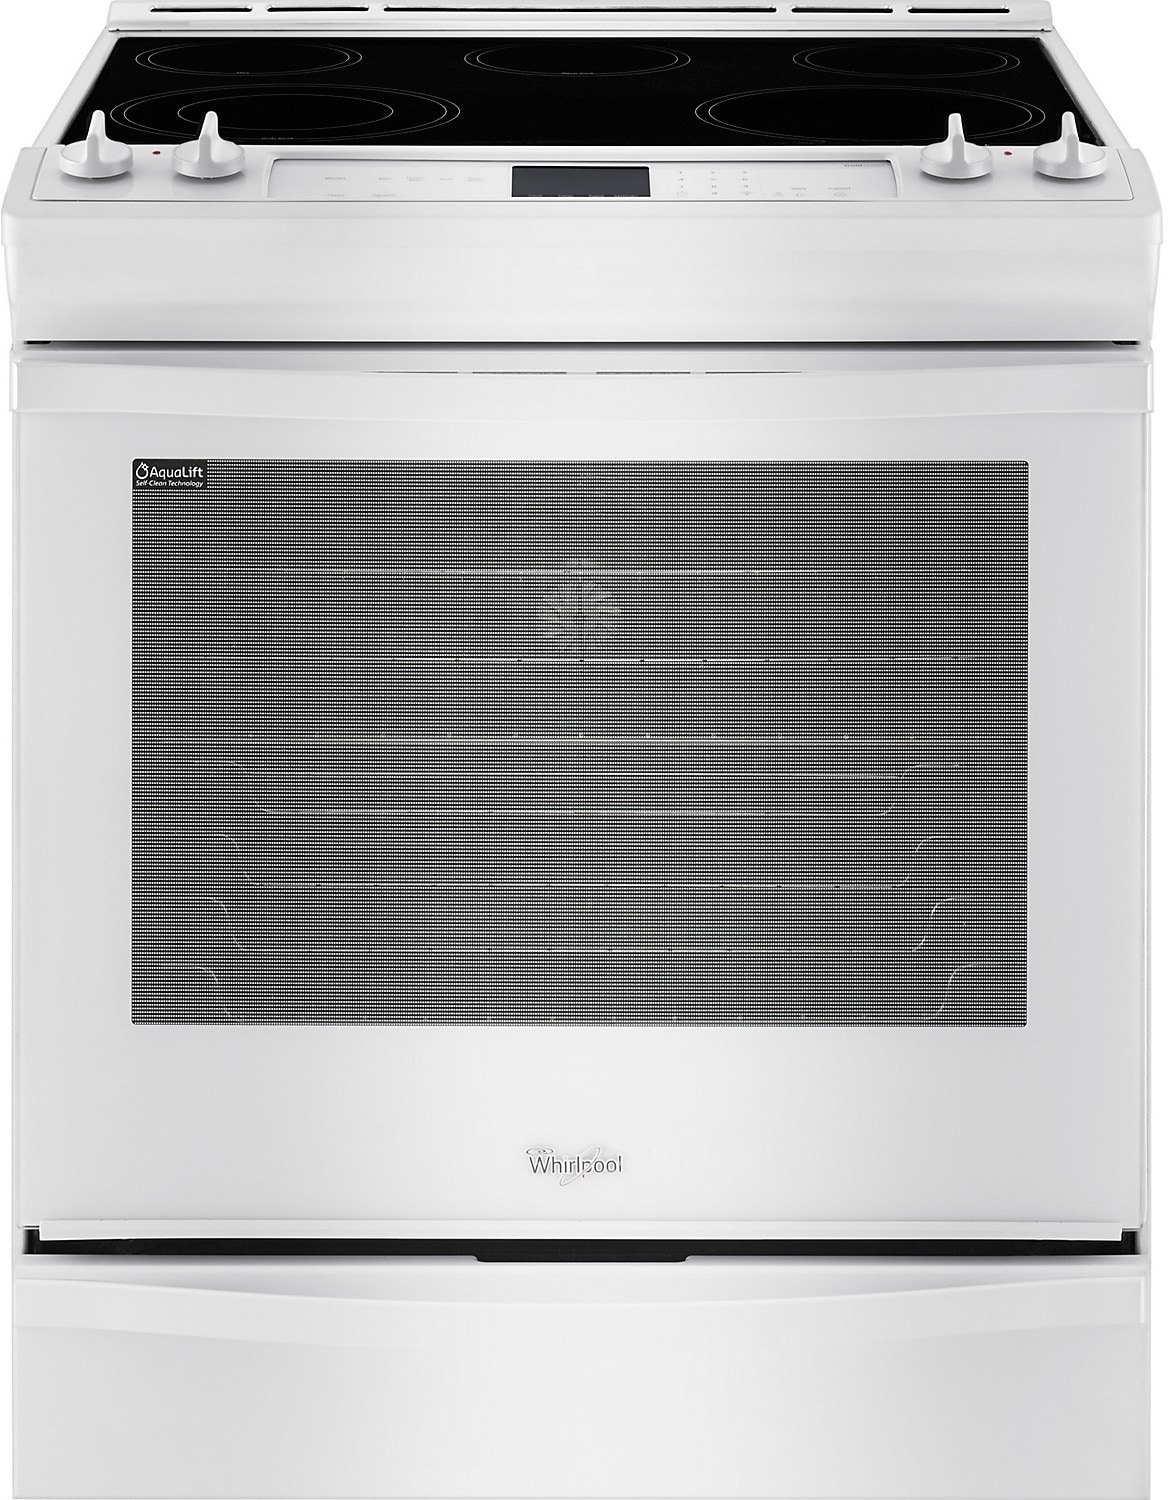 Whirlpool 6.2 Cu. Ft. Electric Range with TimeSavor™ Convection - White